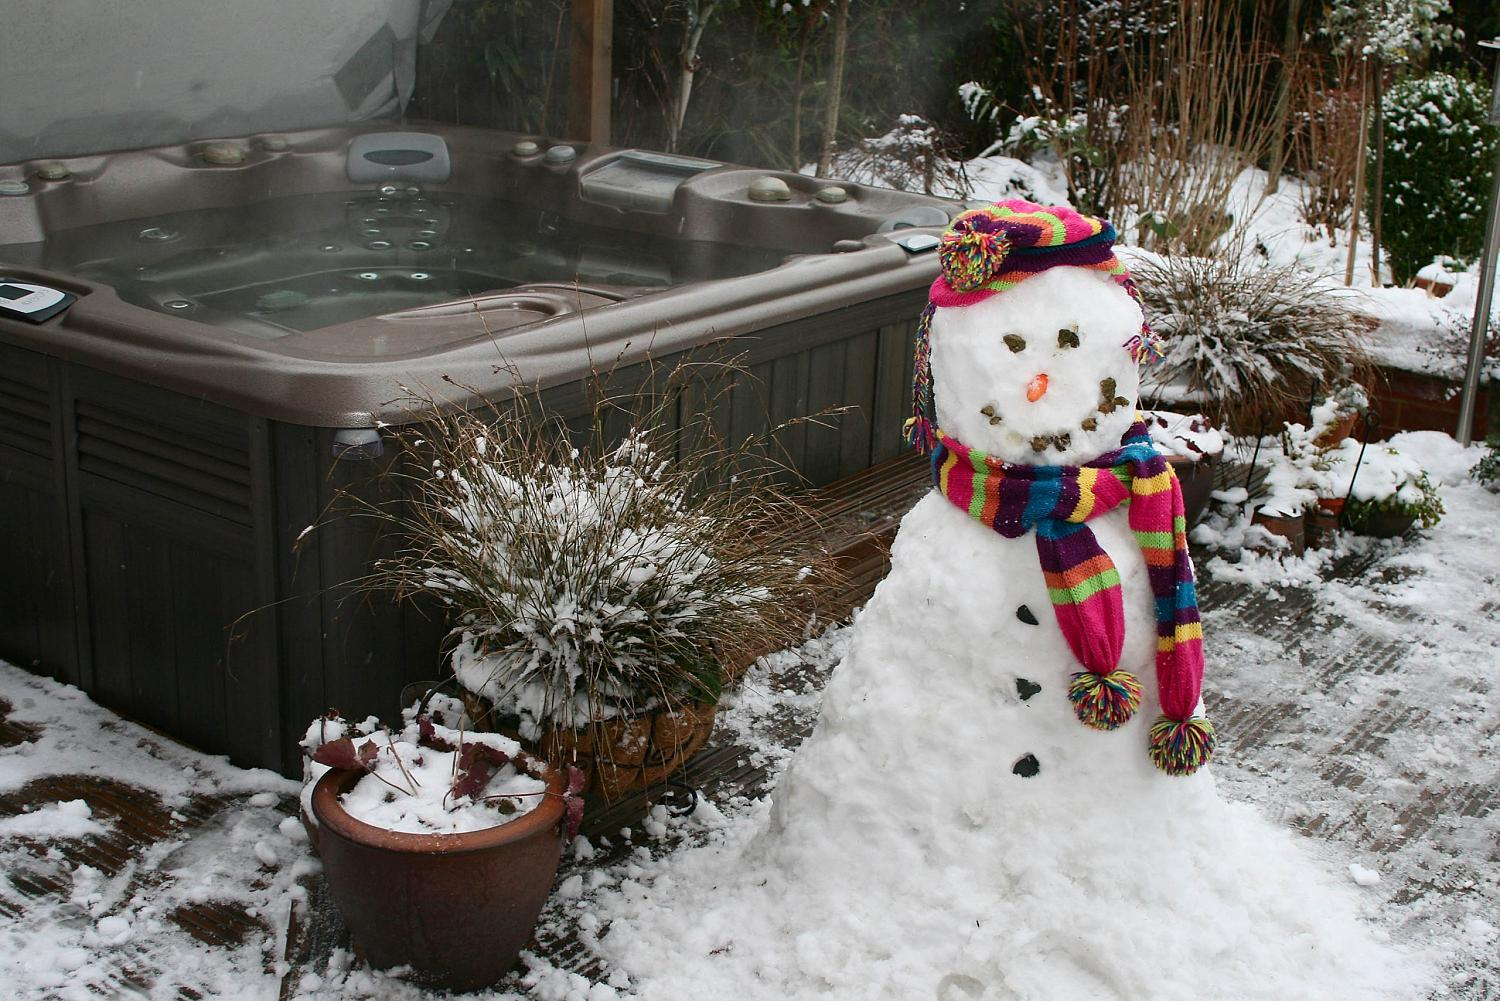 Hot tub spa outside with a snowman next to it